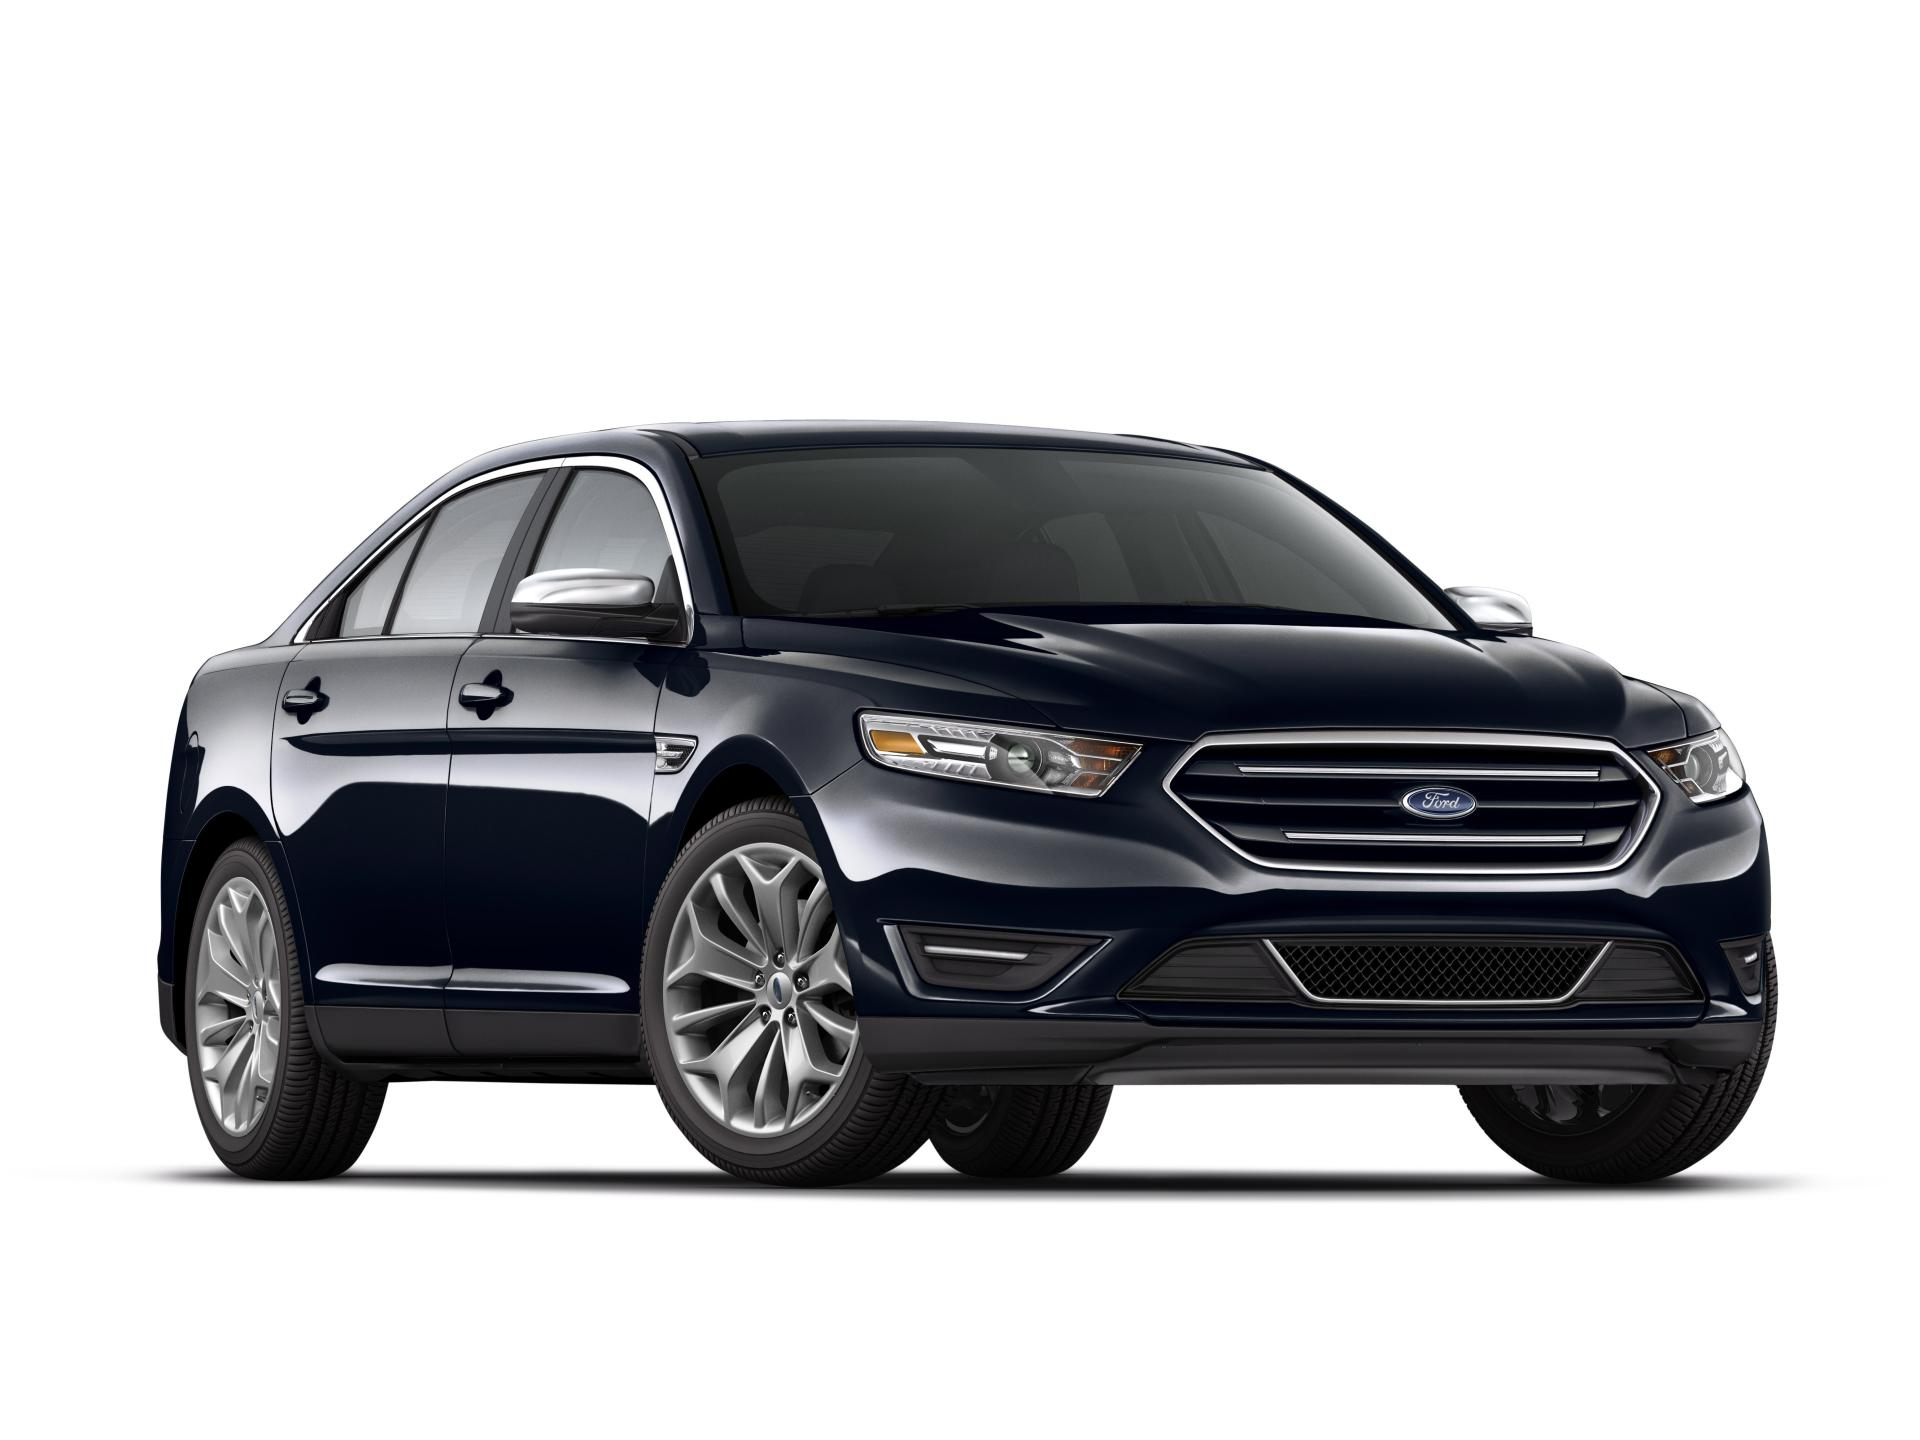 2014 ford taurus news and information conceptcarz com